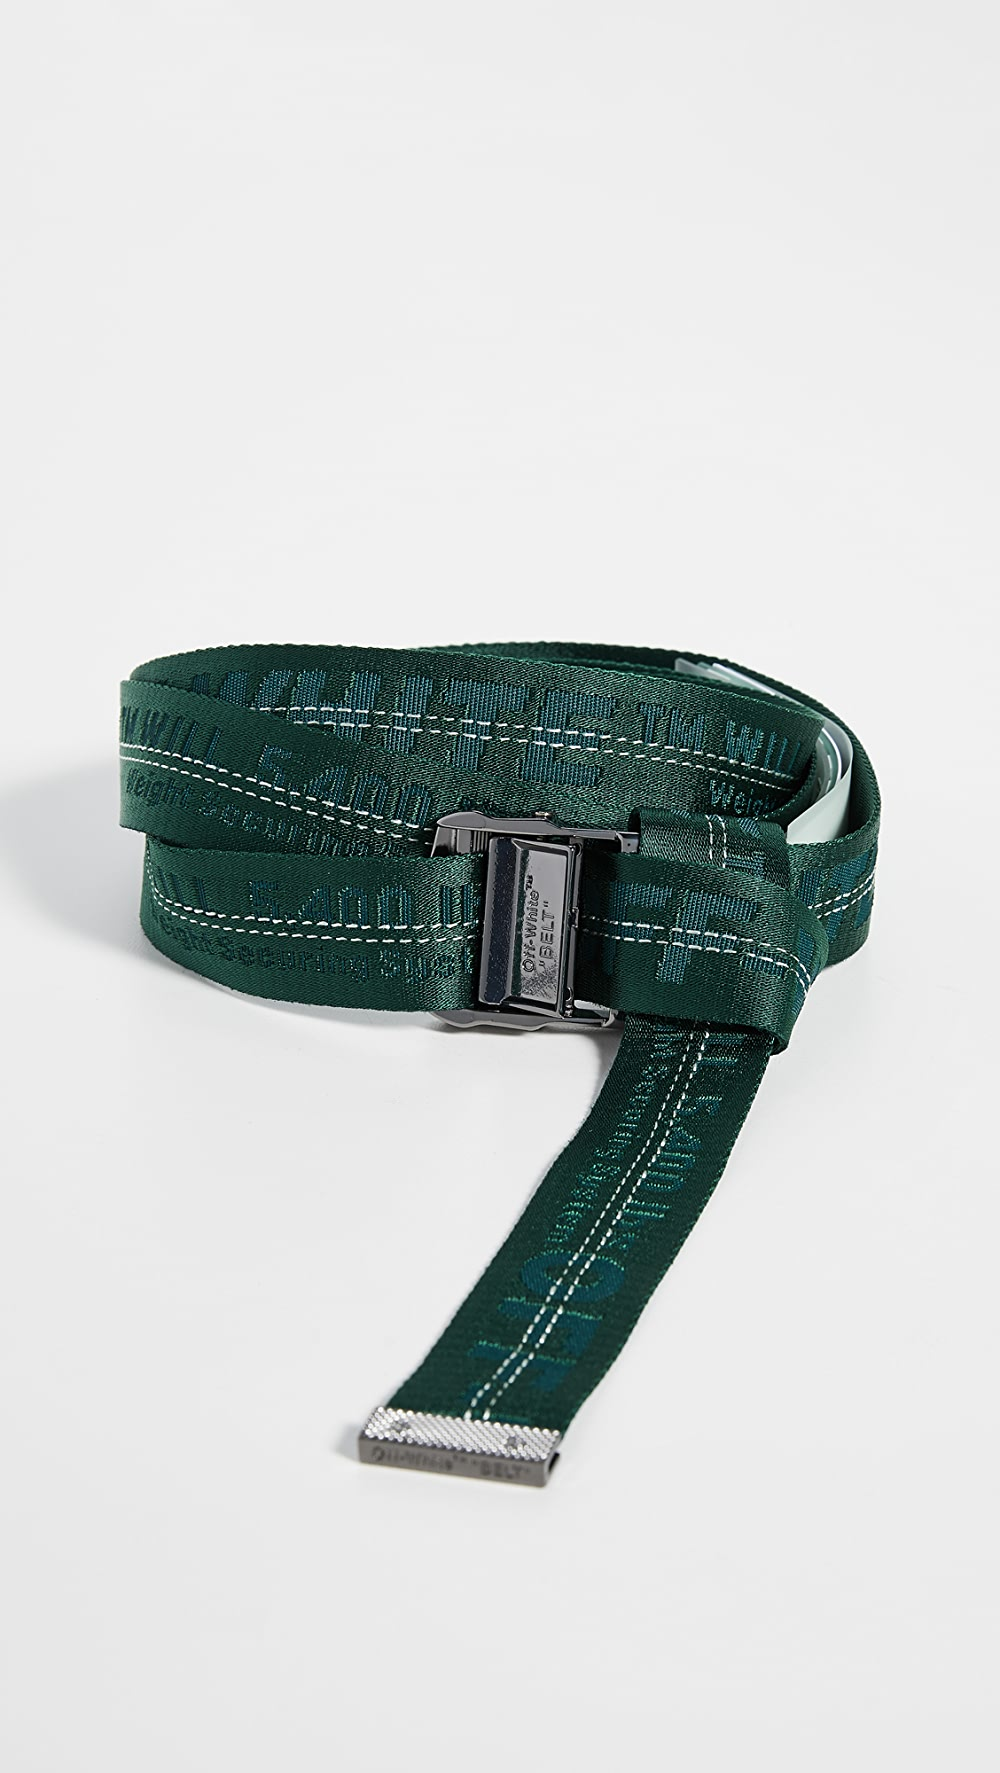 Adroit Off-white - Classic Industrial Belt High Quality And Inexpensive